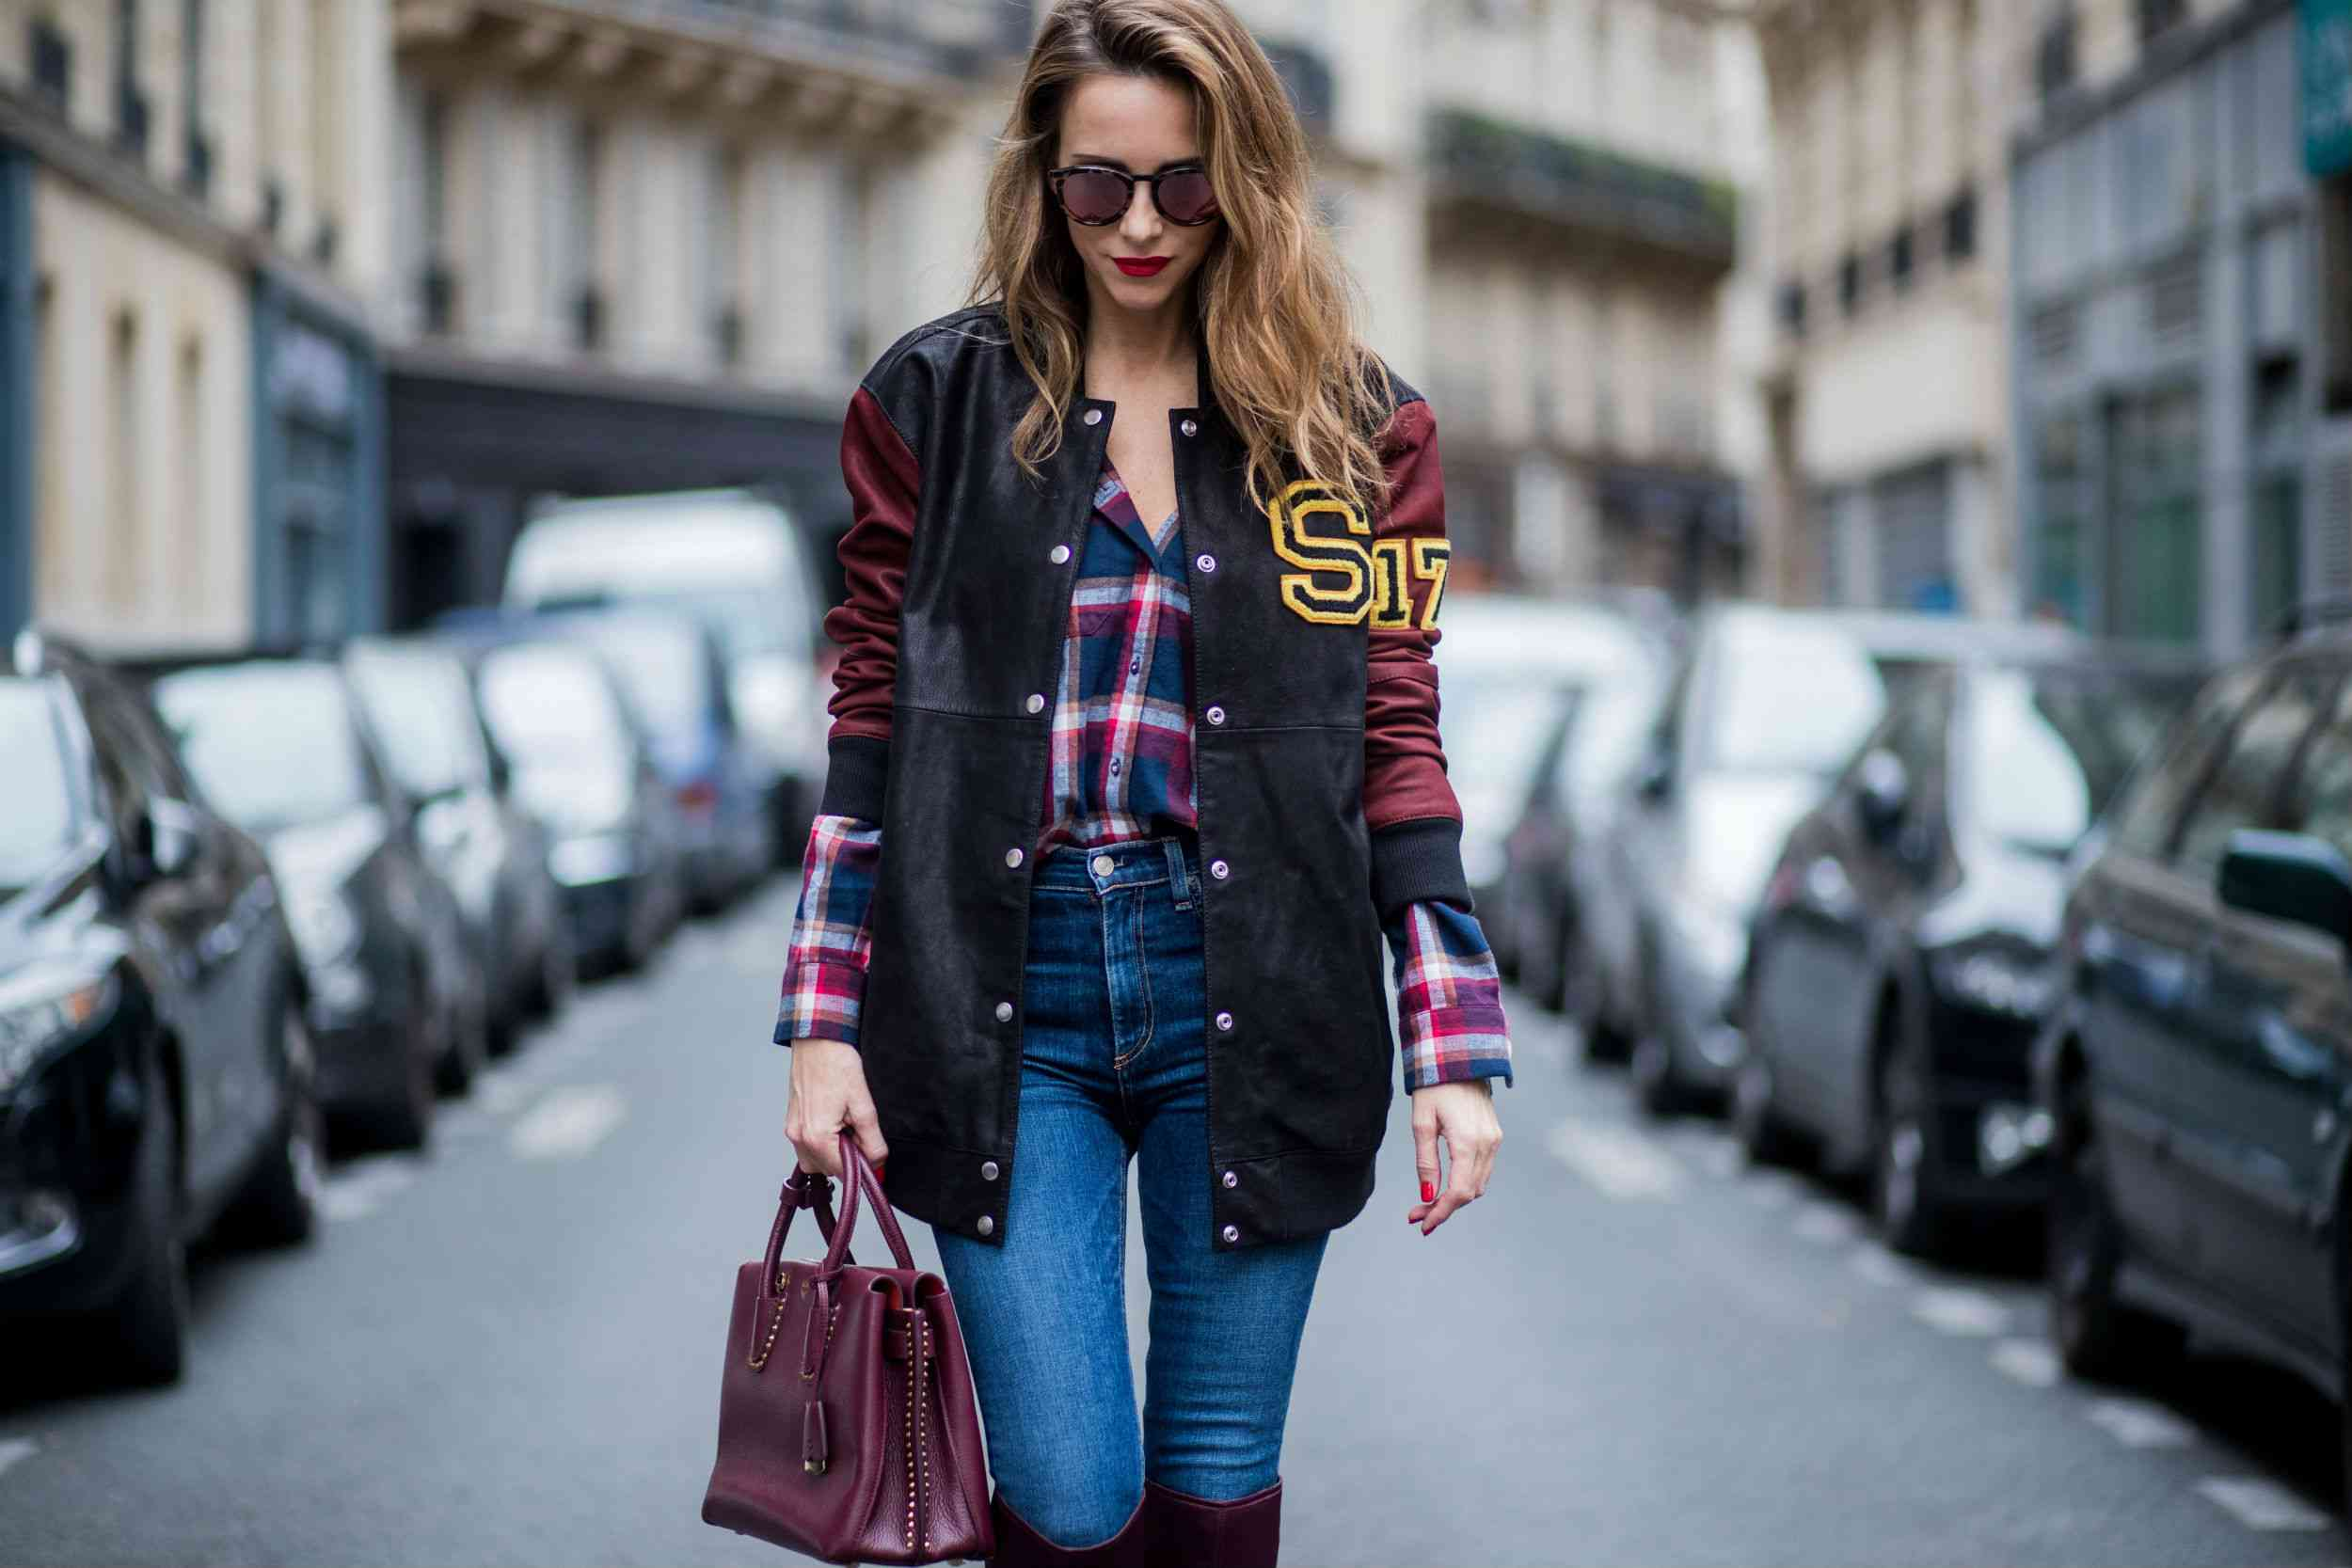 Street style plaid shirt and jeans